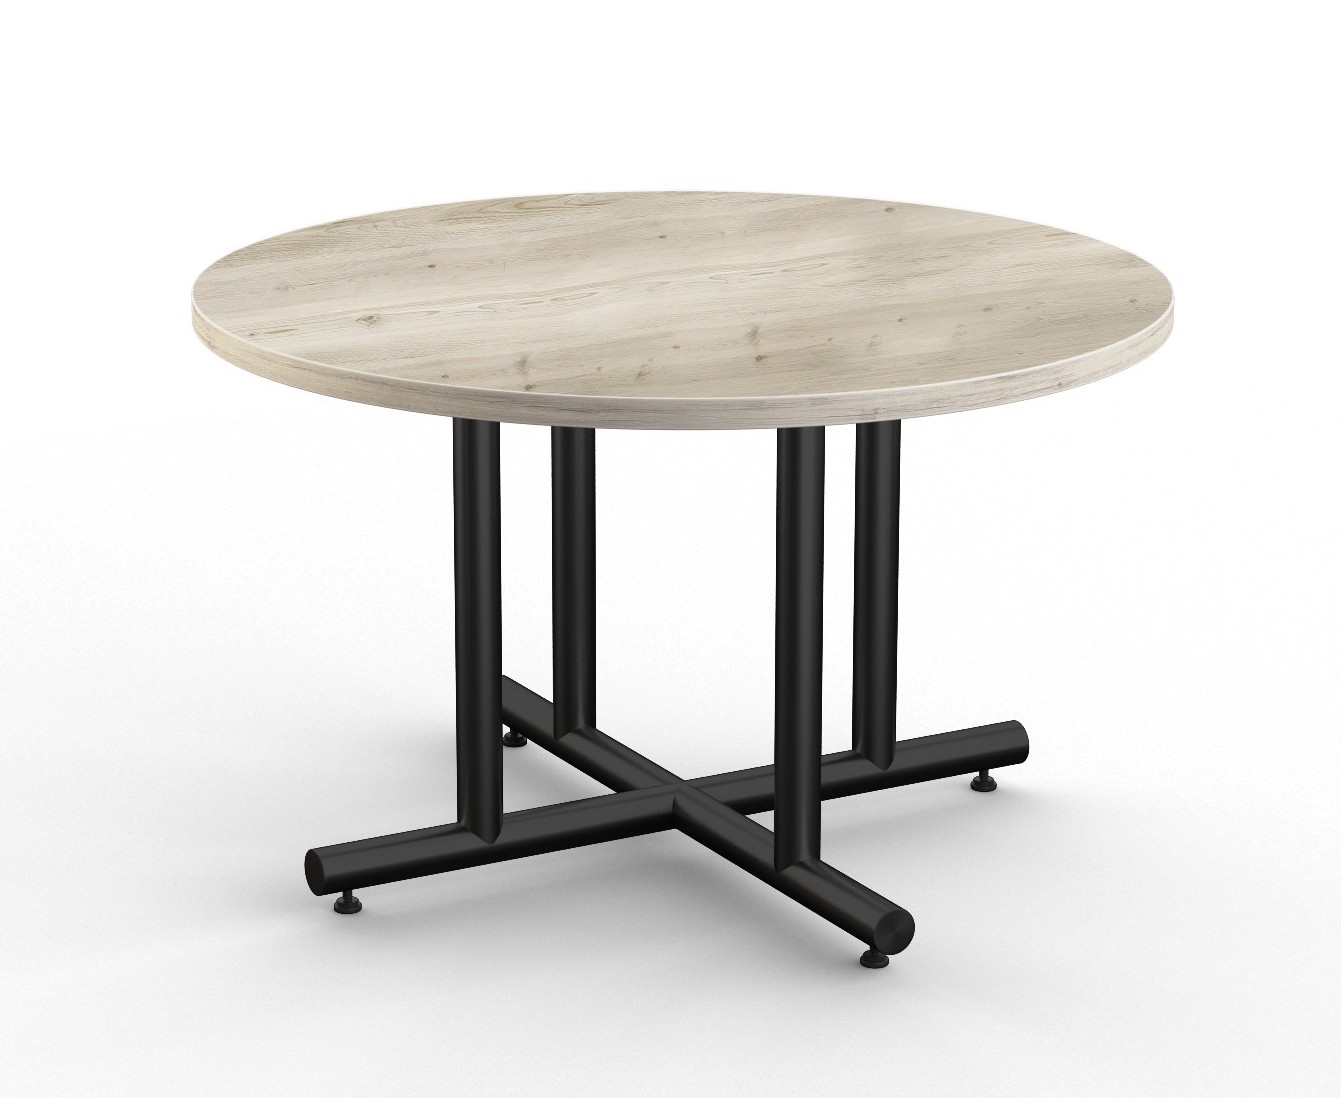 special-t bedford round table